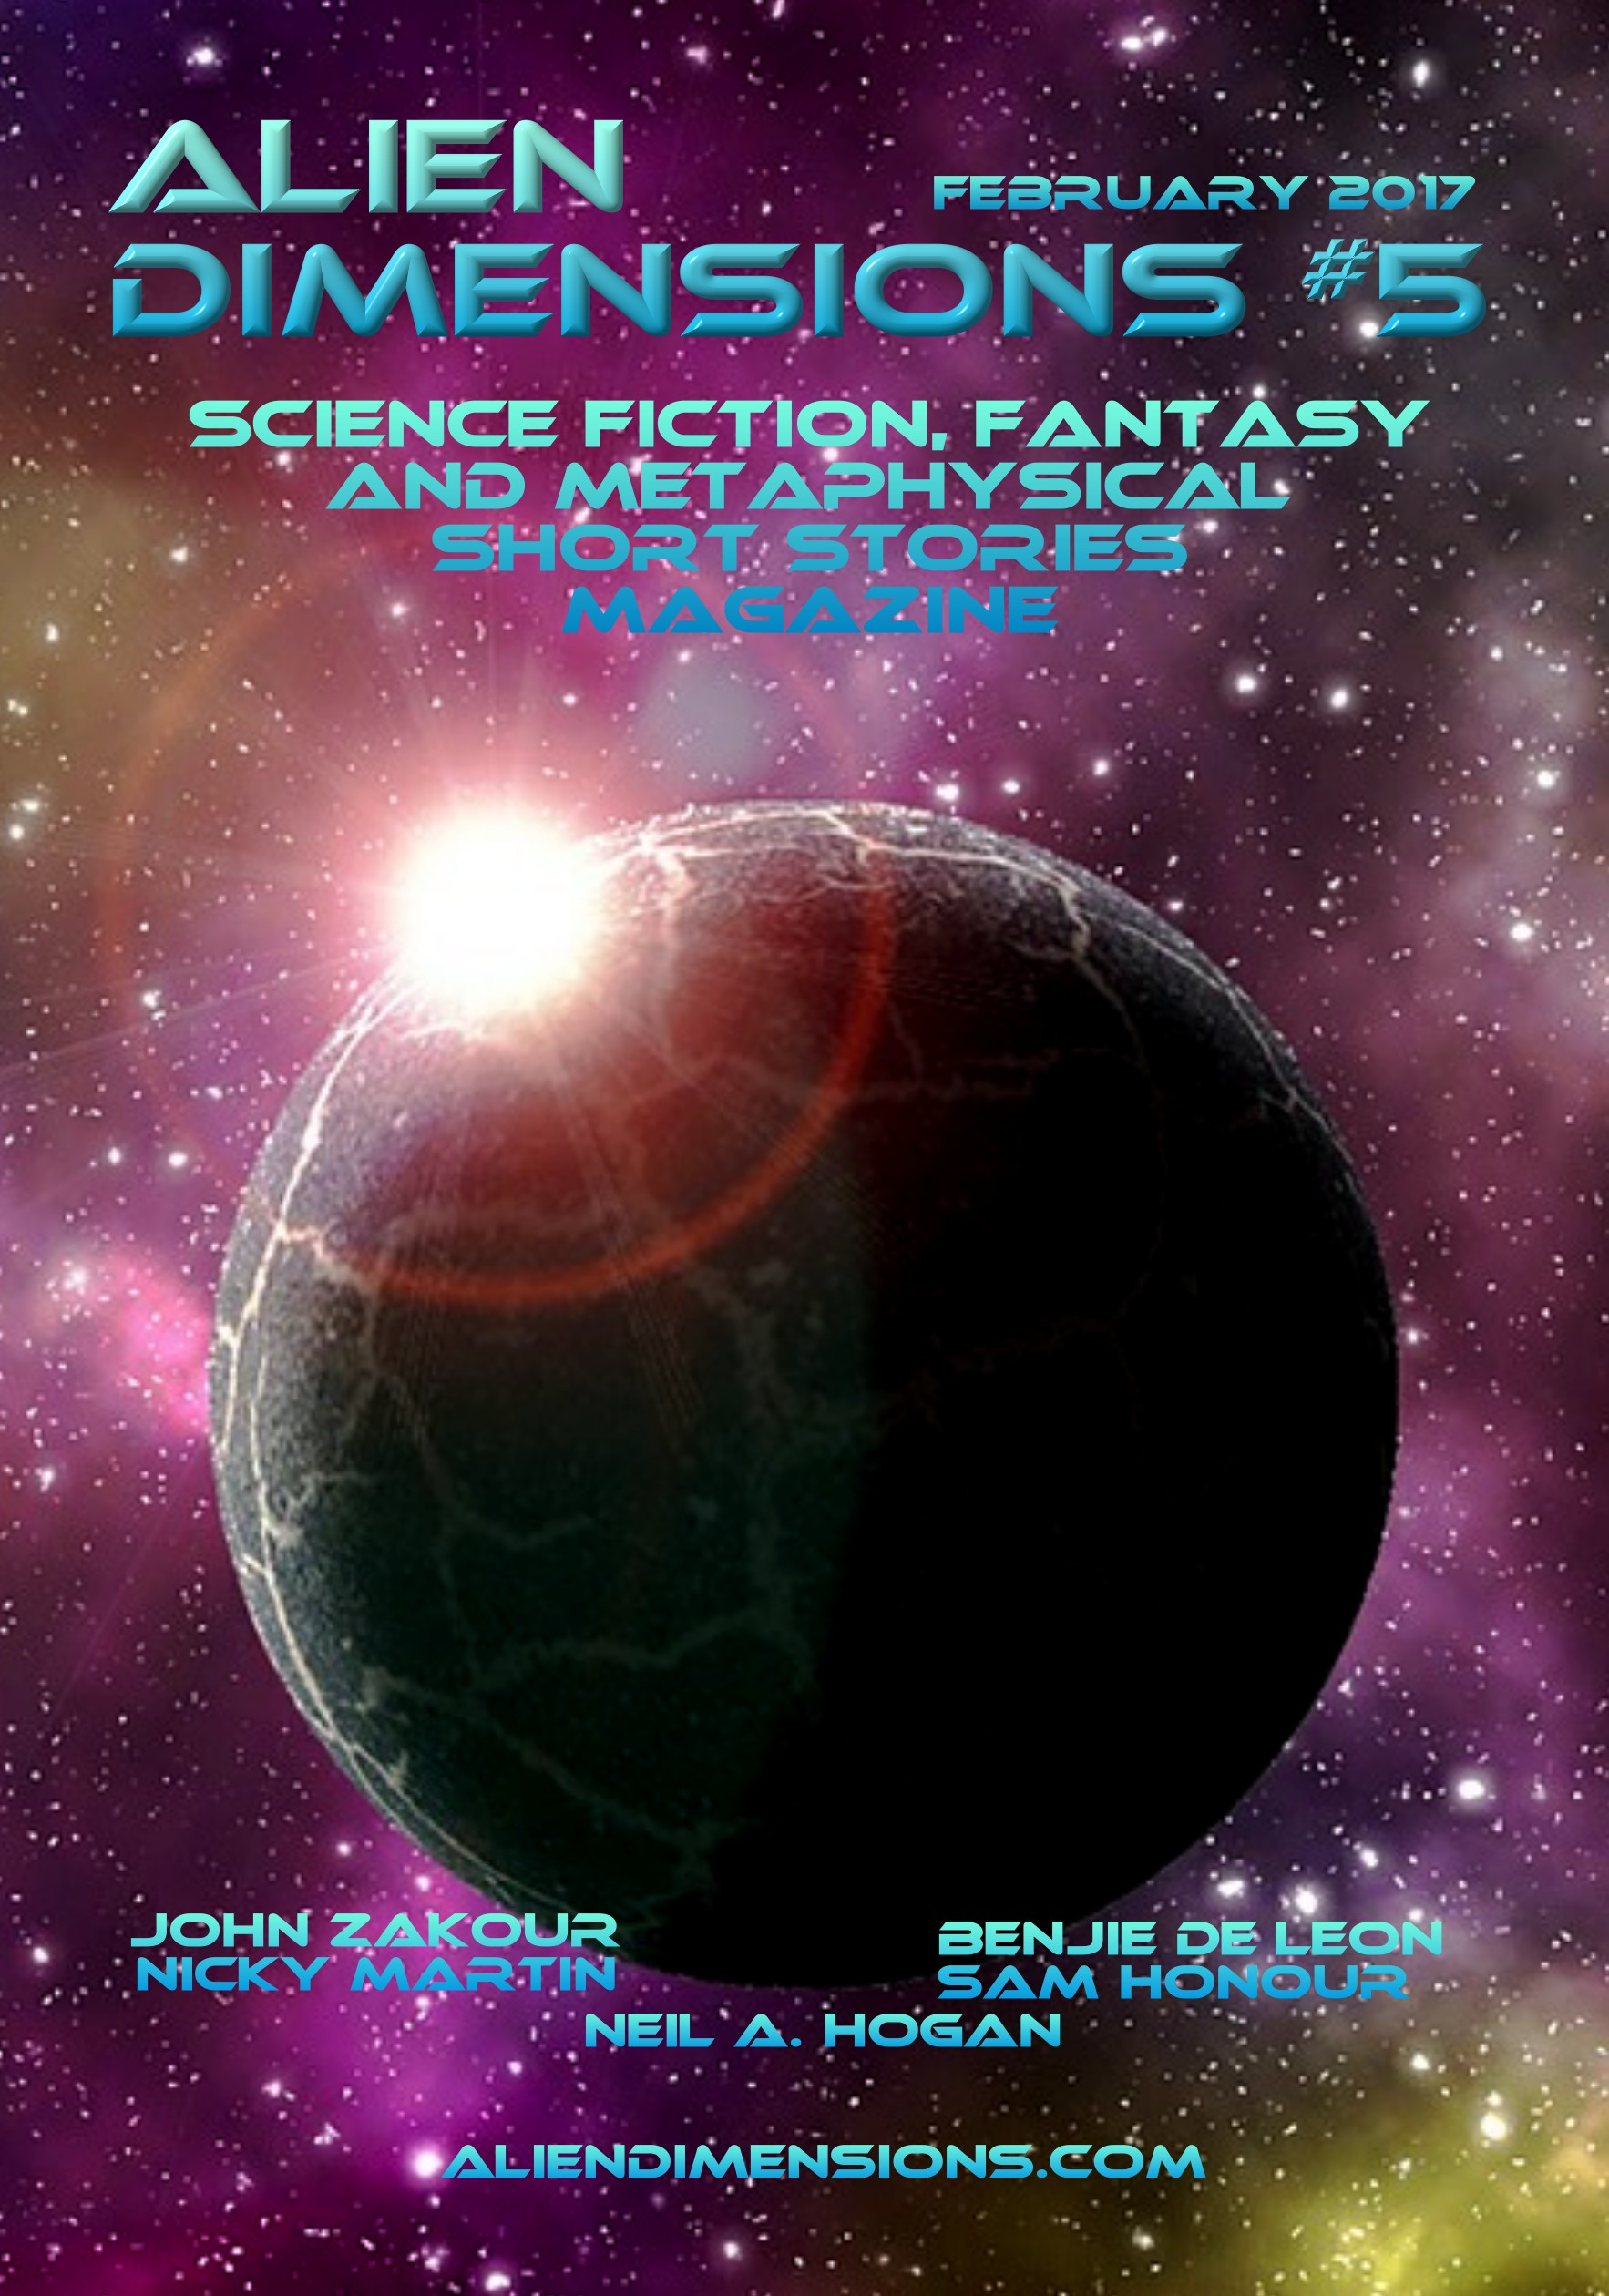 Alien Dimensions Science Fiction Fantasy Metaphysical Short Stories Magazine Monthly